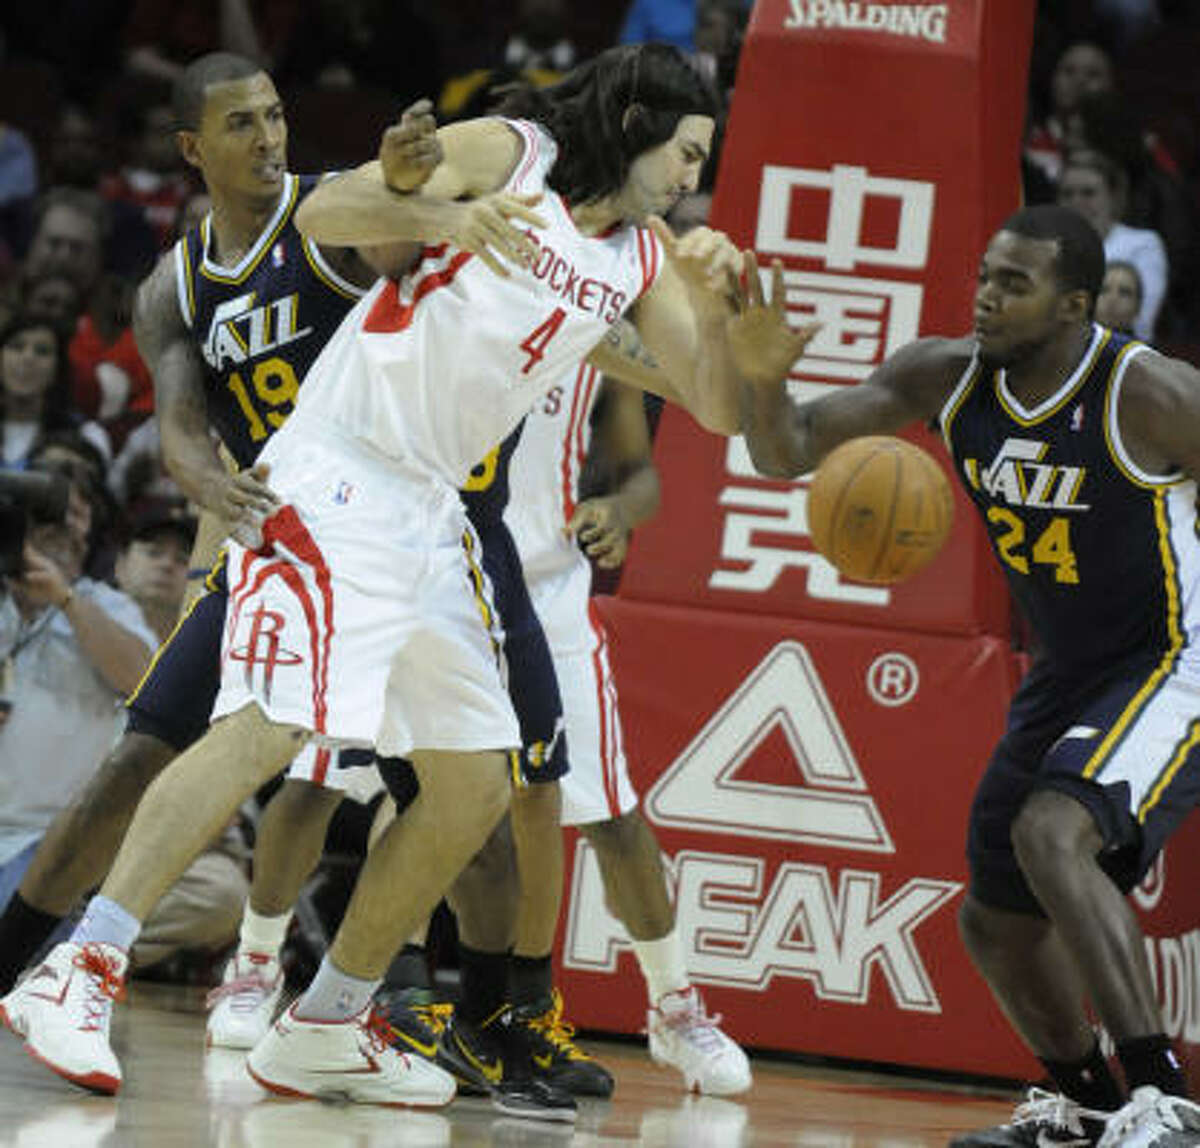 Rockets forward Luis Scola (4) loses the ball to Jazz forward Paul Millsap (24) with help from Raja Bell (19).